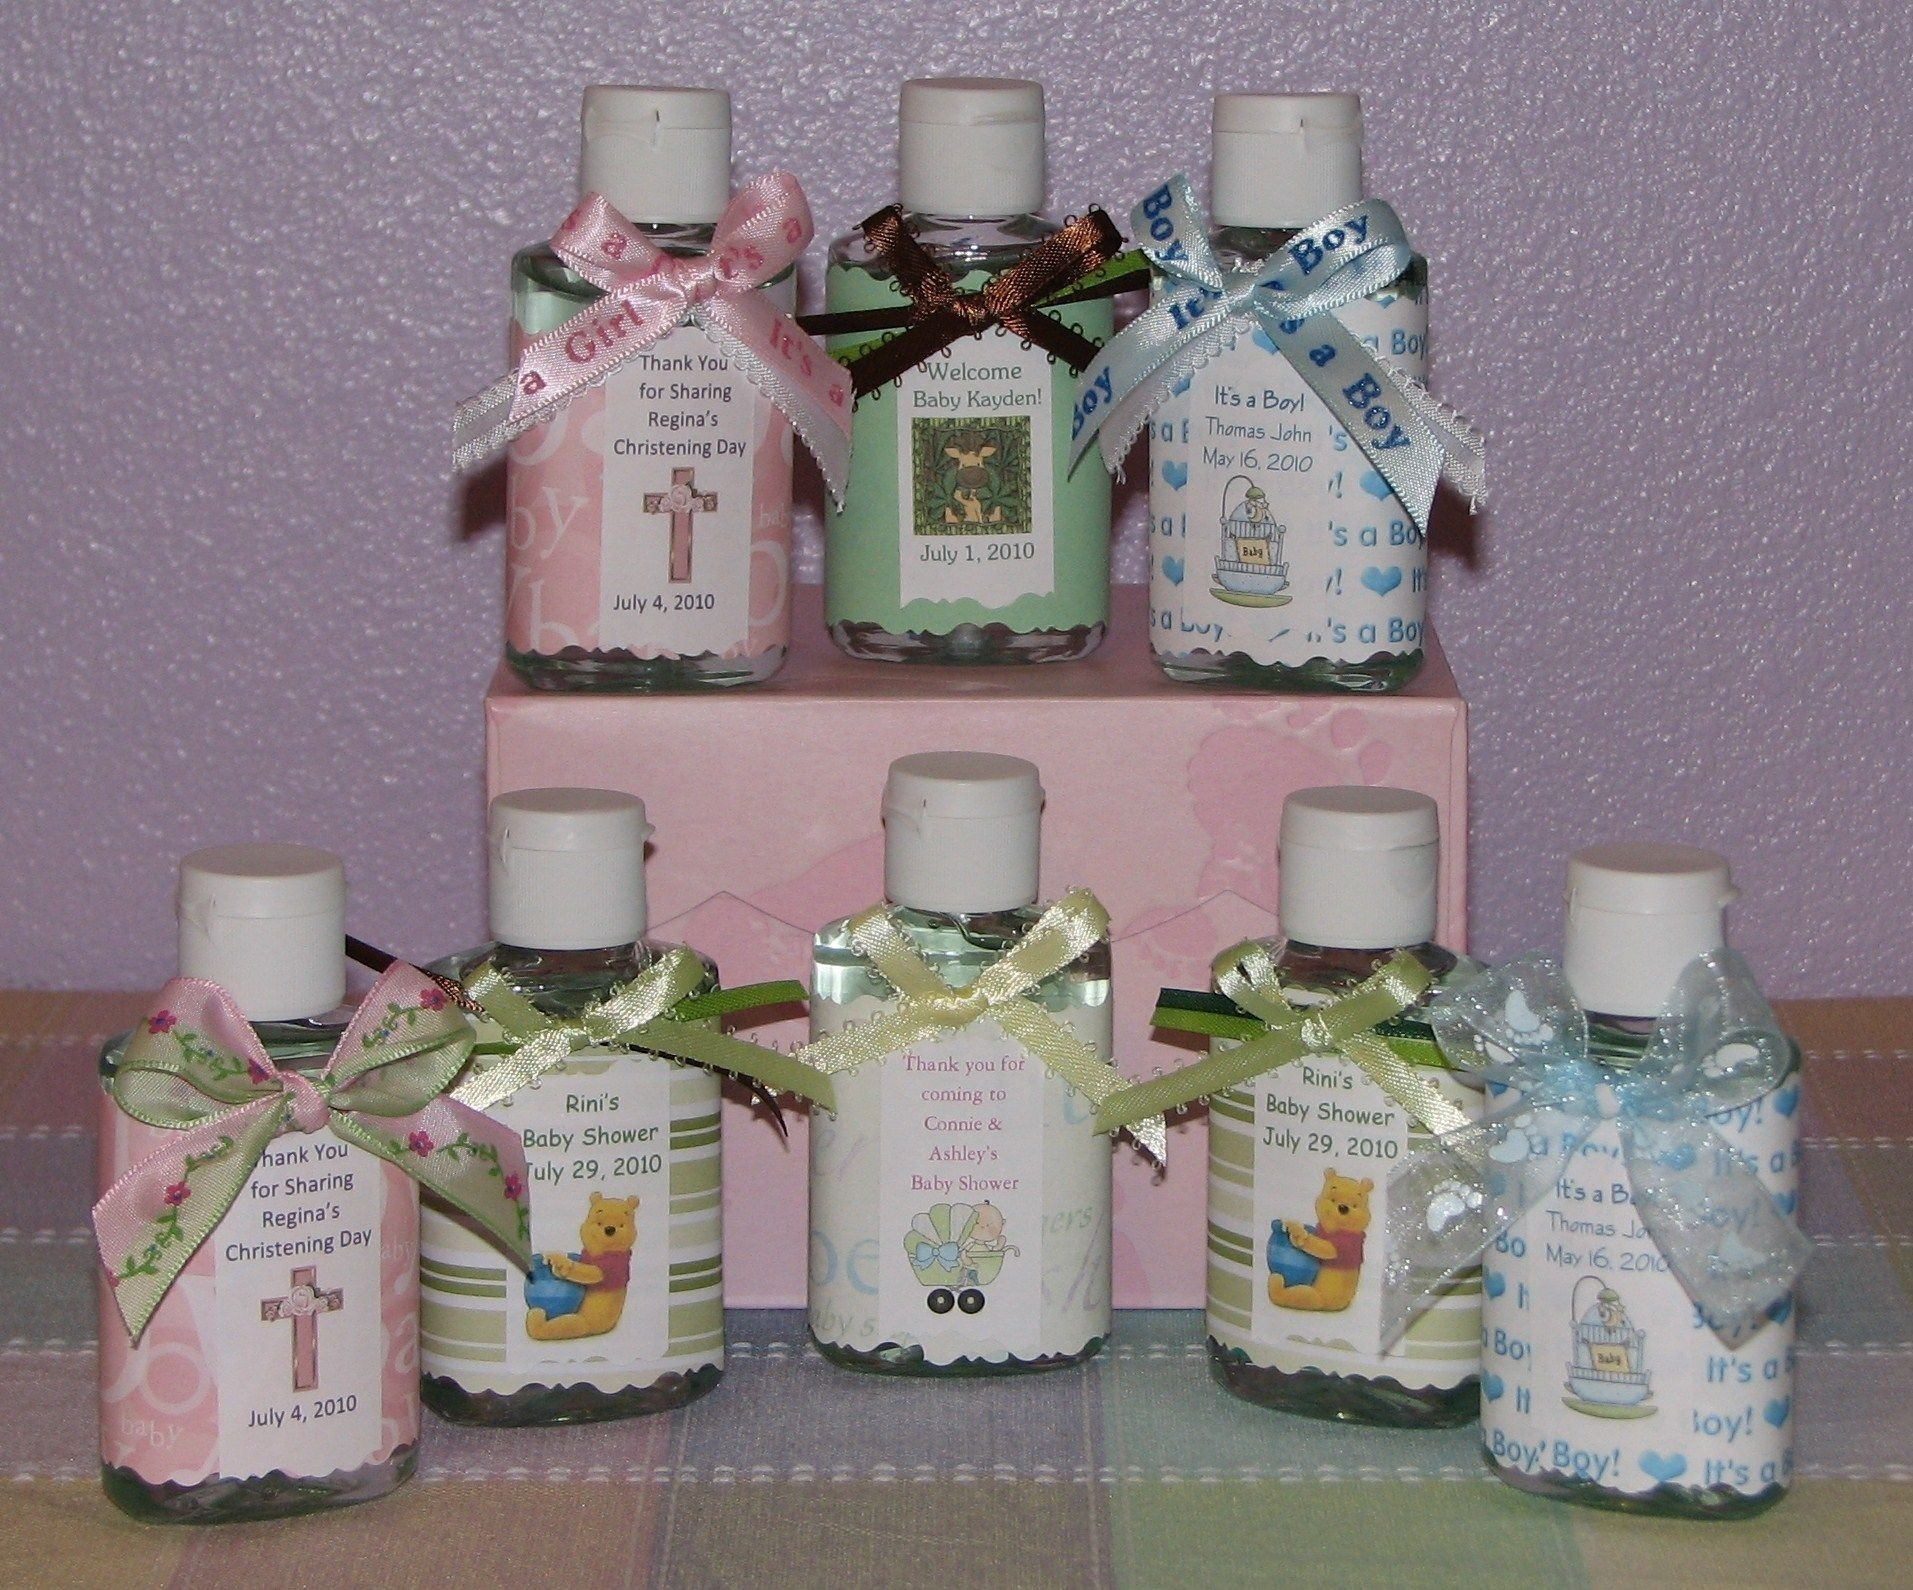 10 Lovable Baby Shower Favors Ideas To Make three creative ideas to make homemade baby shower favors baby